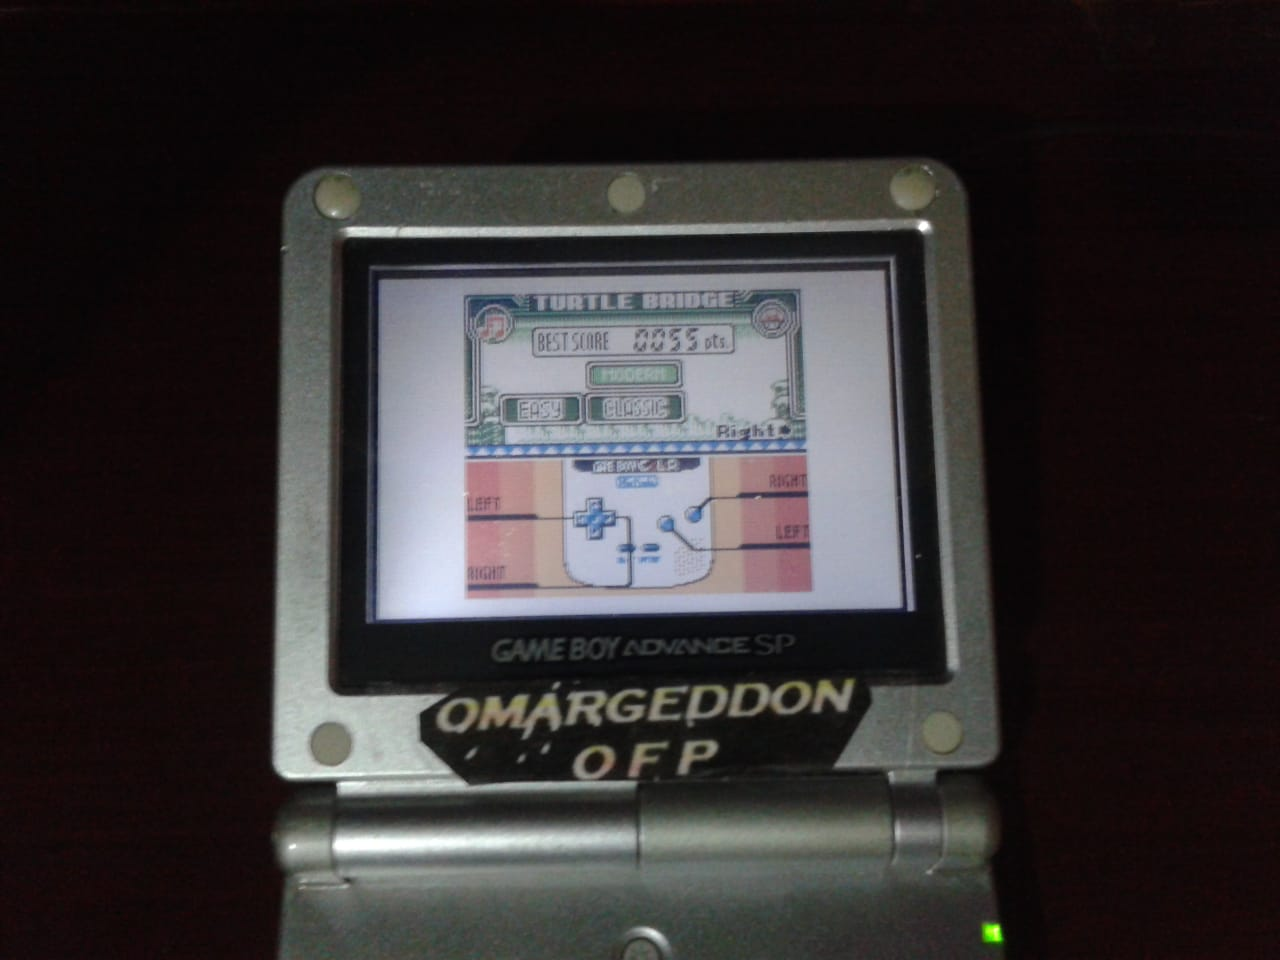 omargeddon: Game & Watch Gallery 3: Turtle Bridge: Classic: Easy (Game Boy Color) 55 points on 2018-07-23 12:01:13